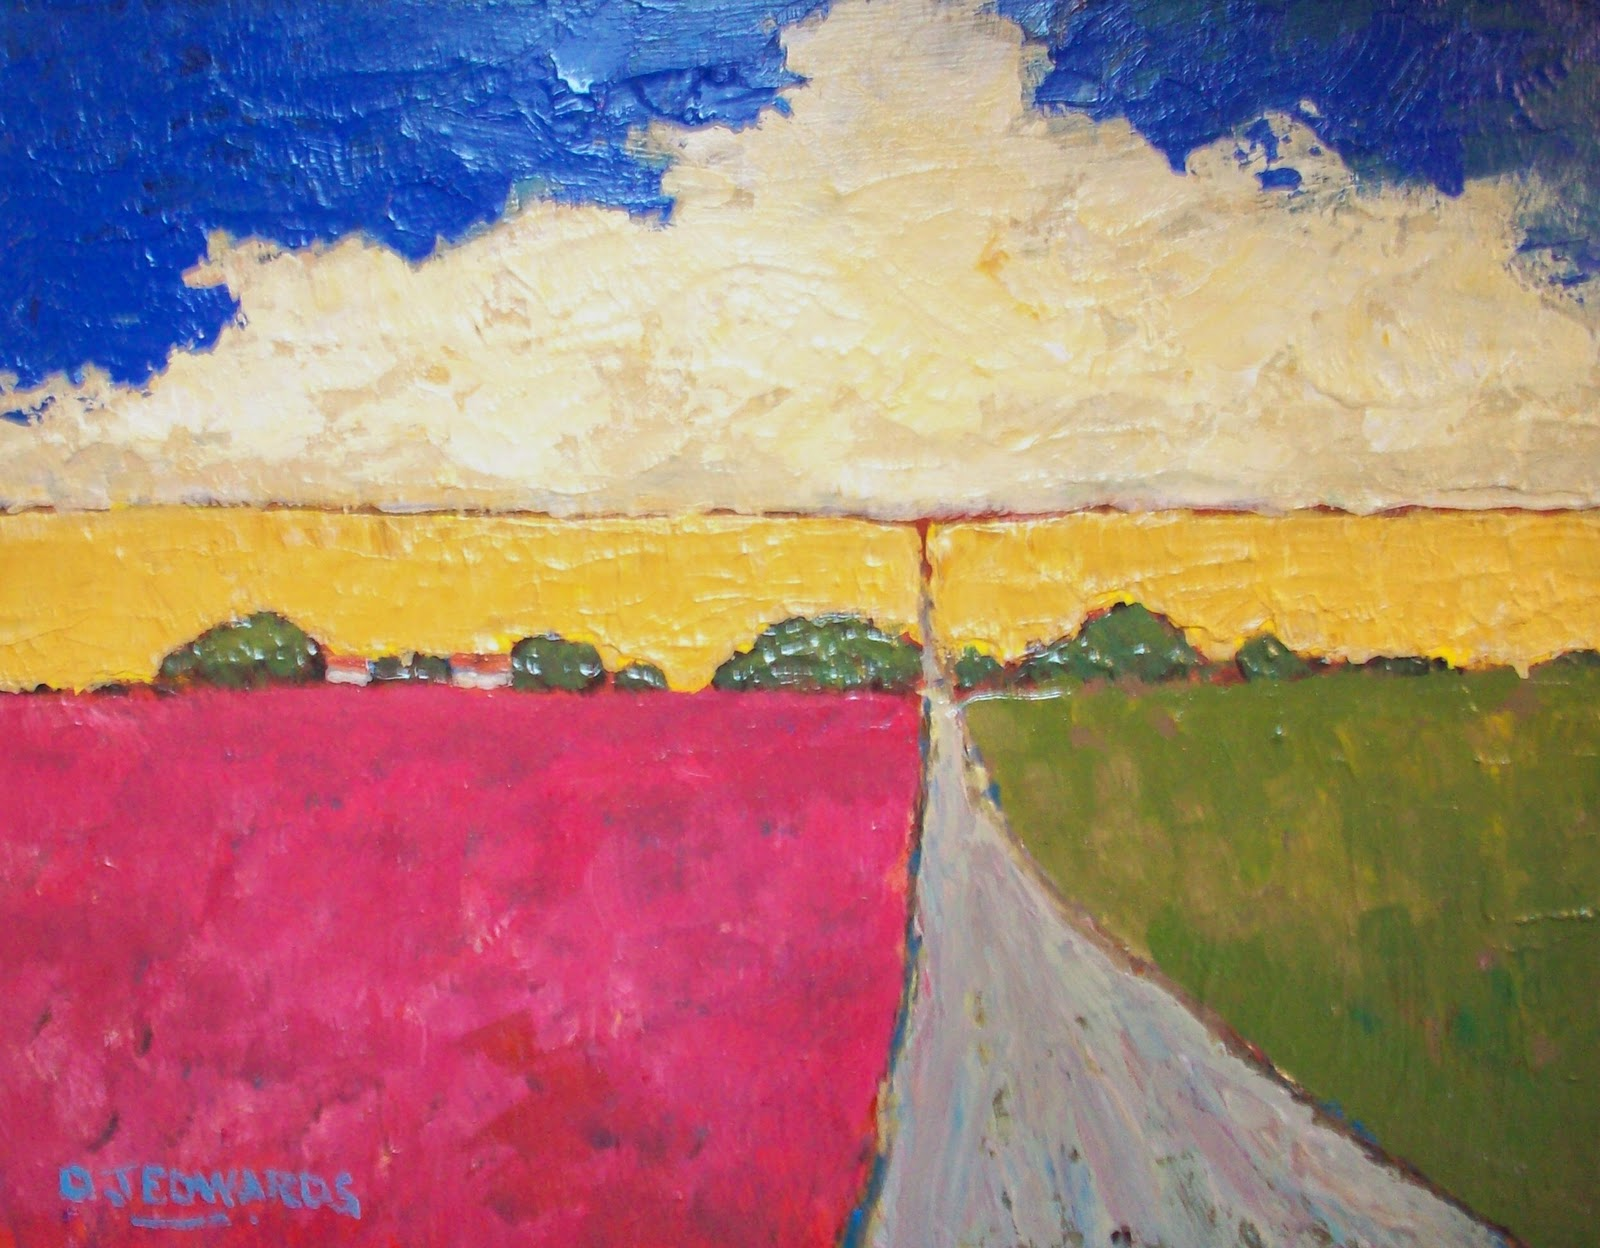 Palette knife painters new painting by david edwards for Palette knife painting acrylic